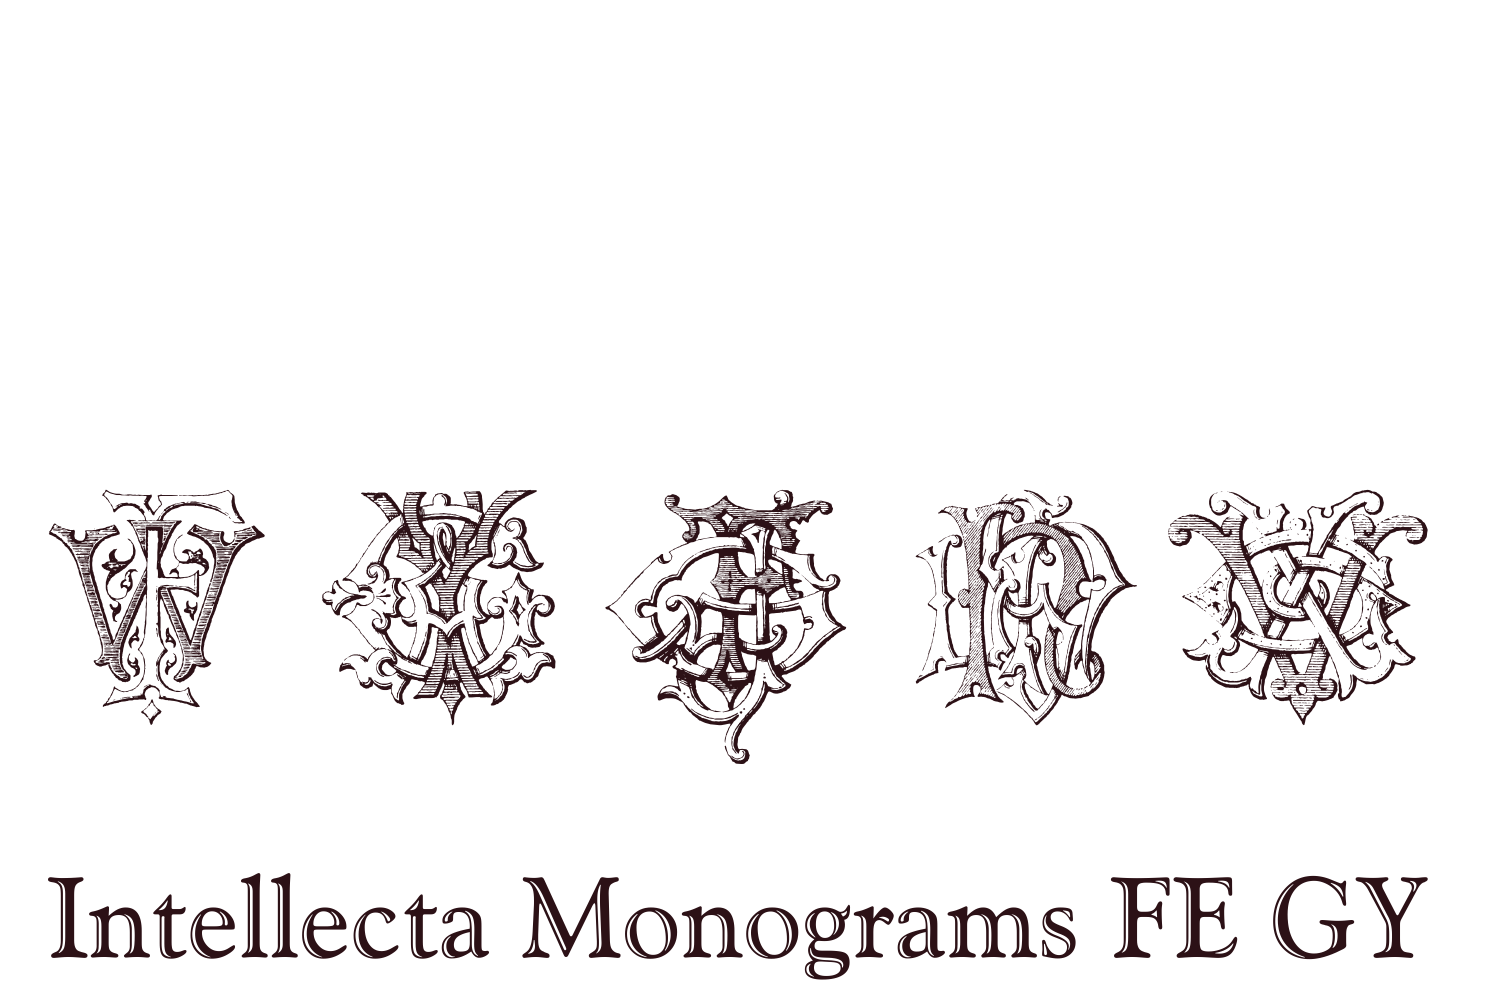 Intellecta Monograms FE GY example image 8